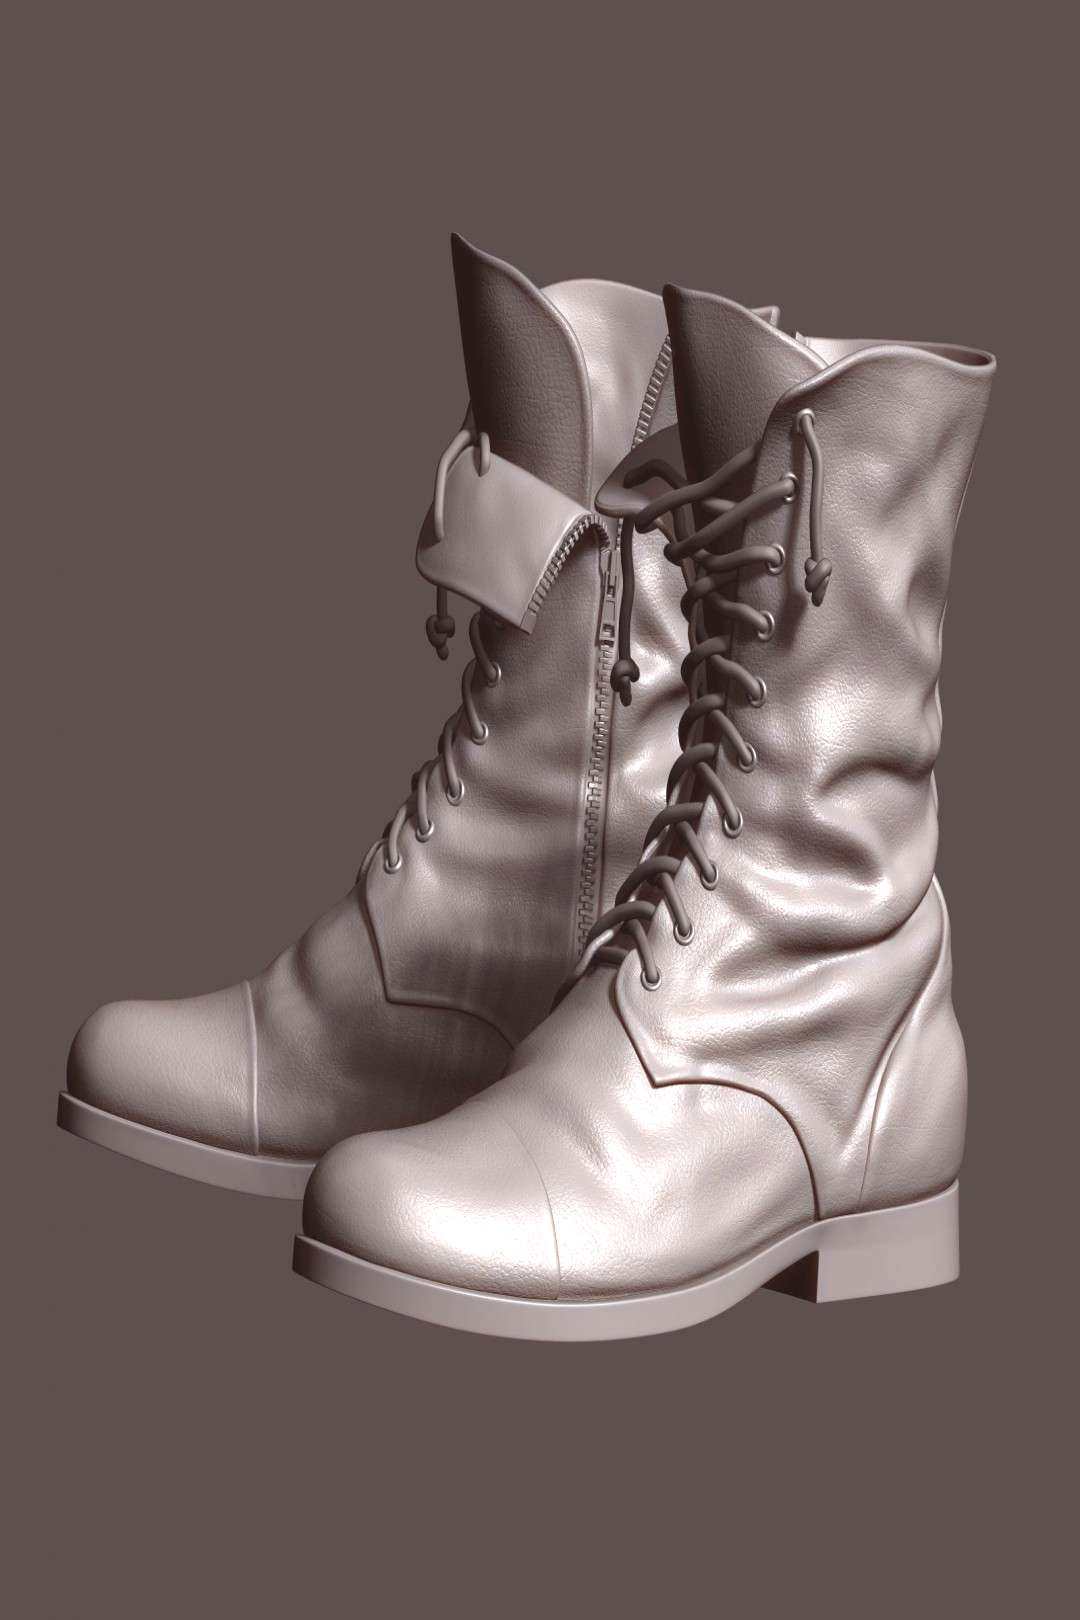 Boots - ZBrush Base Model by illusionist3d.    BOOTS - ZBRUSH BASE MODEL    This is a Boots ZBrush